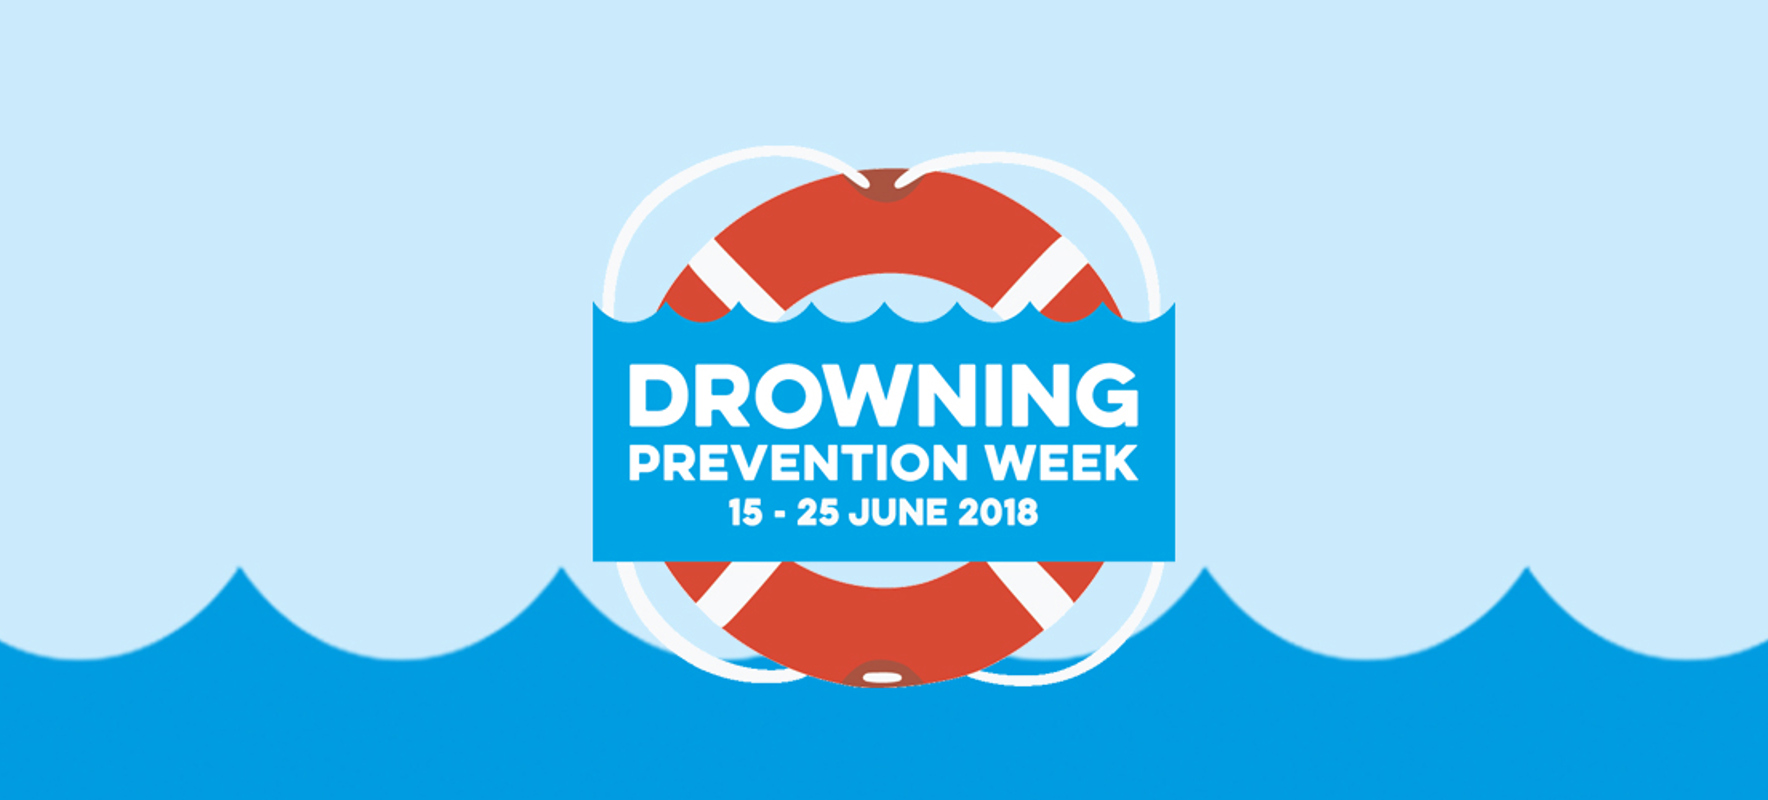 It's your last chance to sign up and support Drowning Prevention Week!